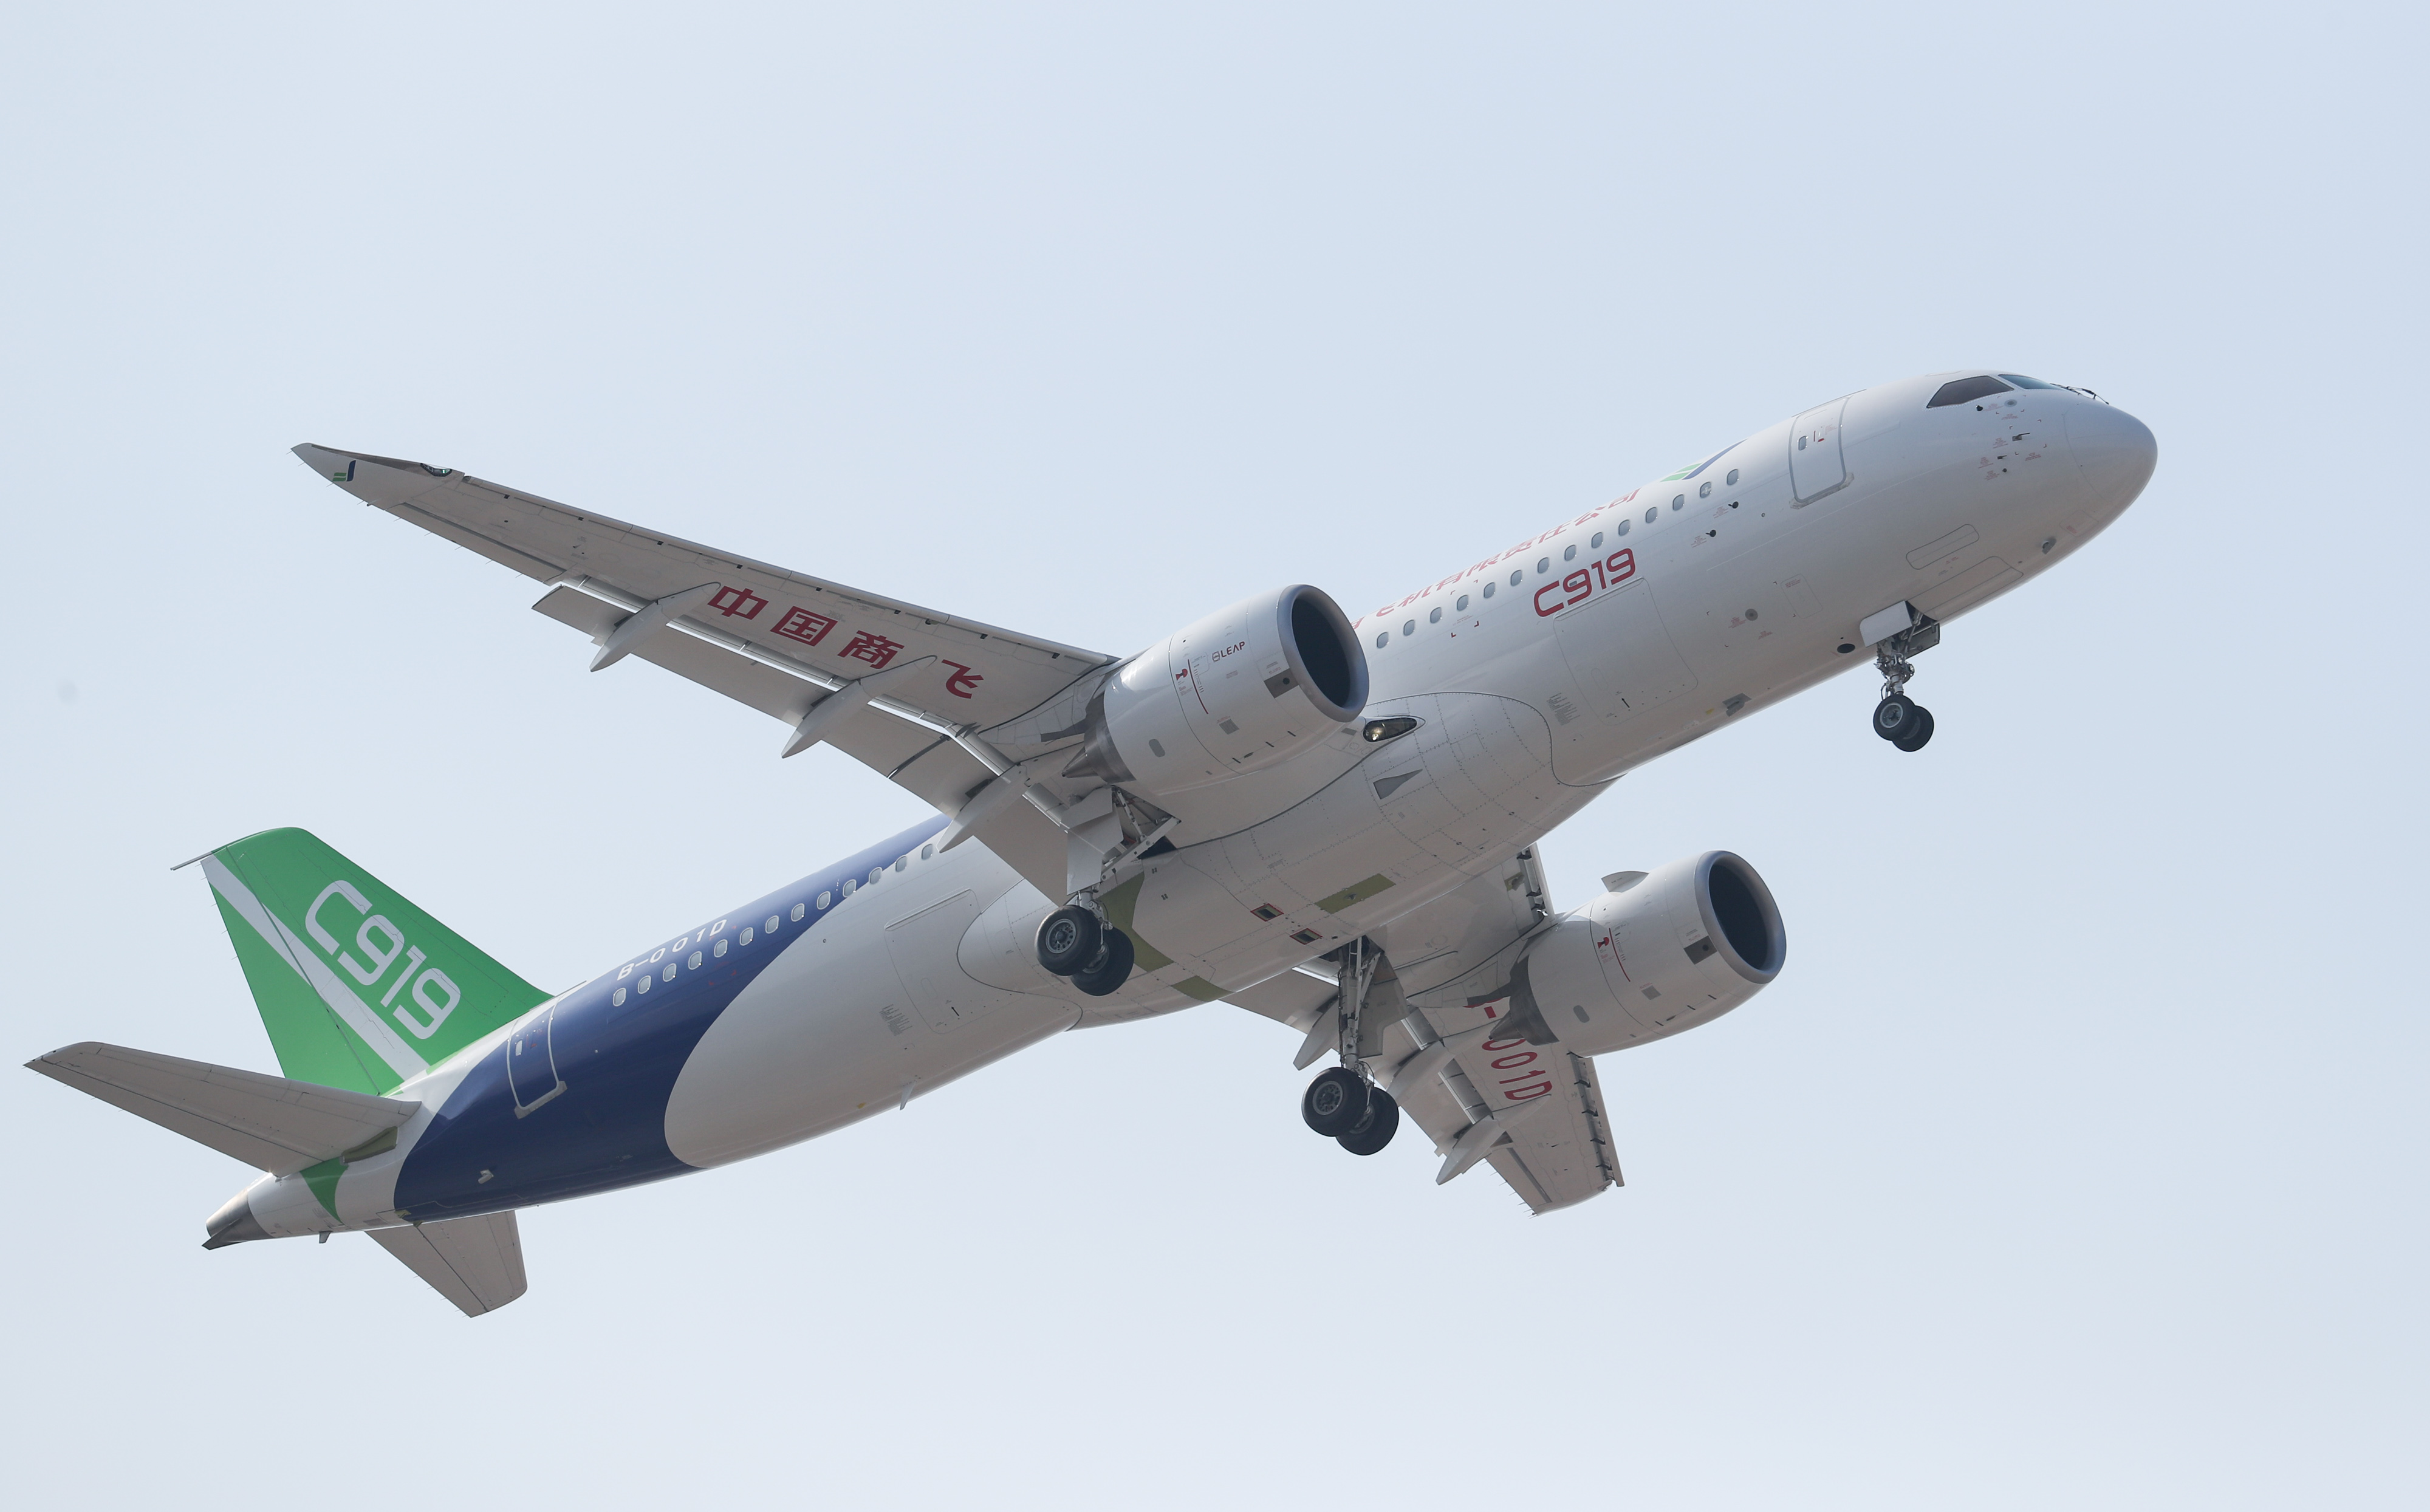 Commercial passenger operation planned in 2021 for China's homegrown C919 jetliner - Xinhua | English.news.cn